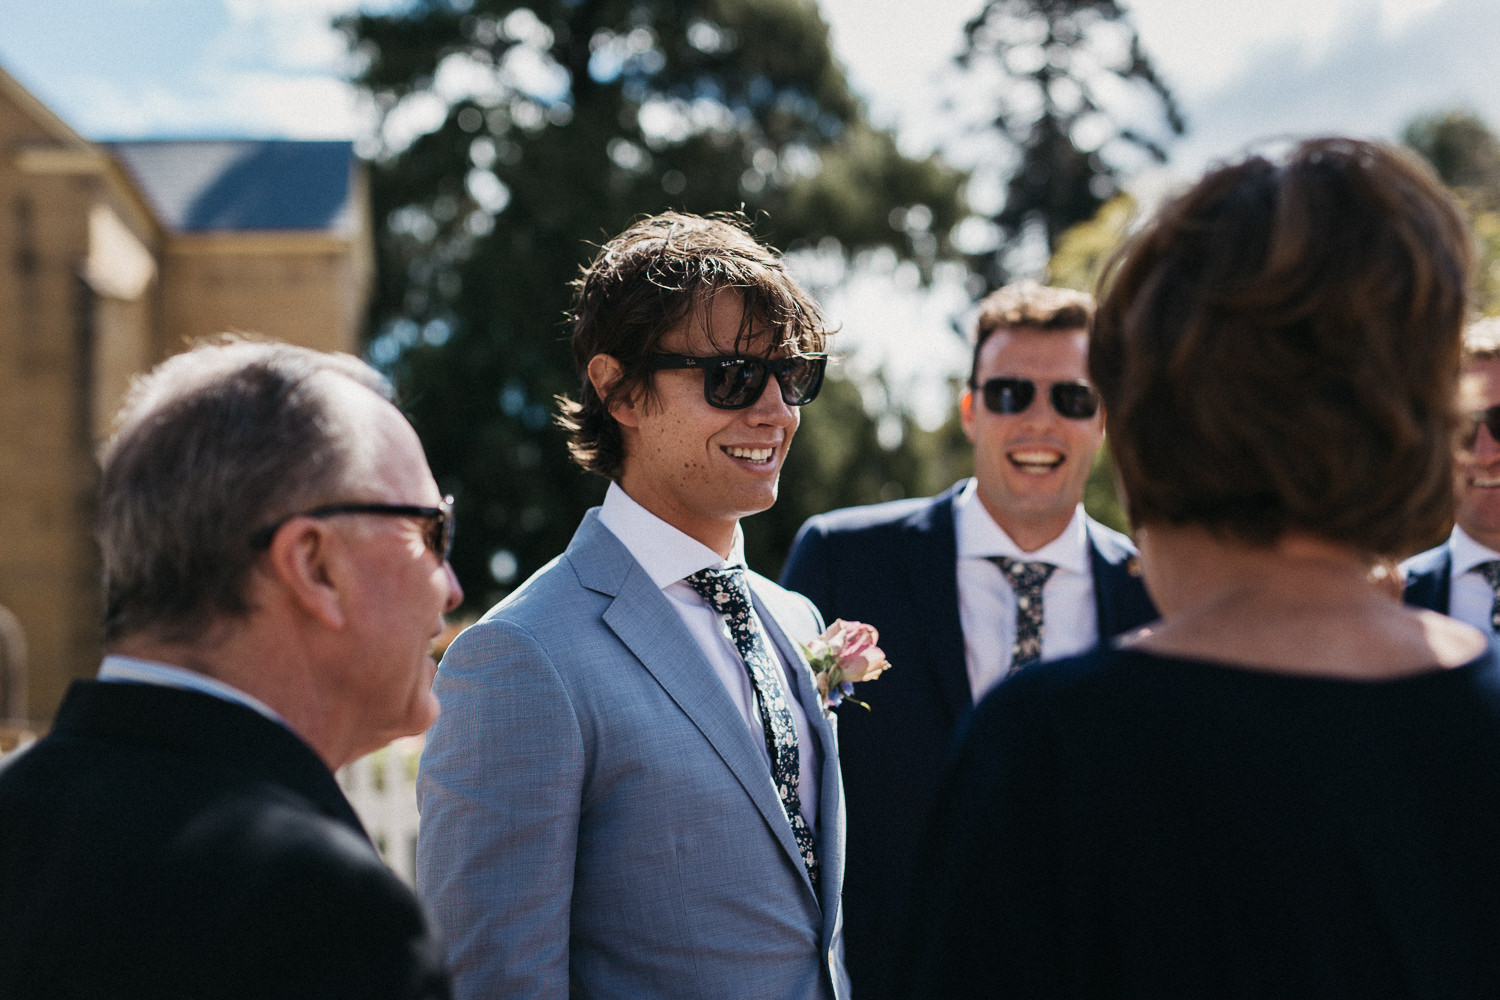 briars-country-lodge-wedding-bowral-nsw-miriam-andy-37